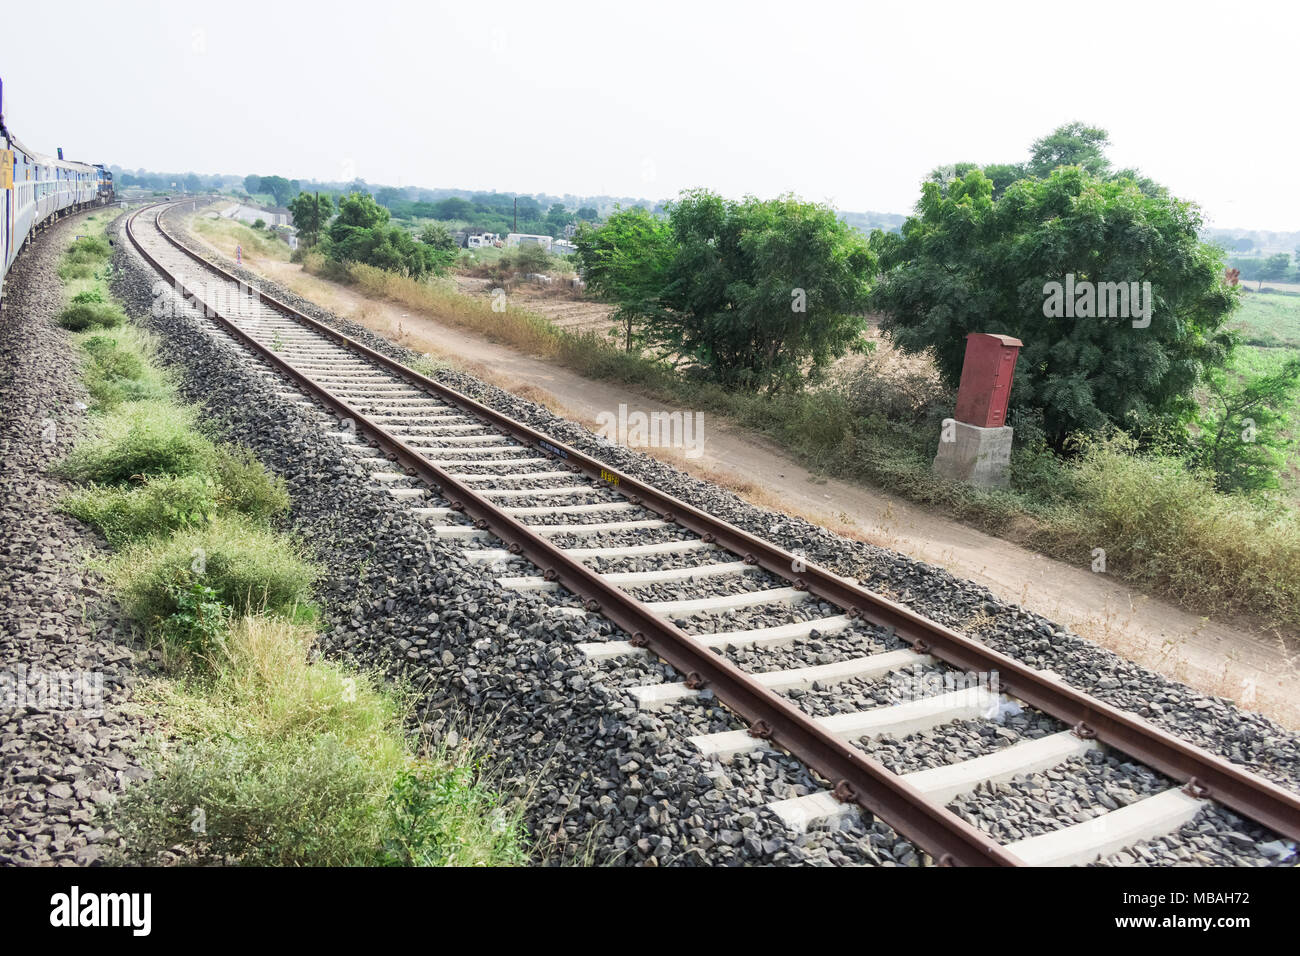 running train side view with railway track looking awesome. Stock Photo